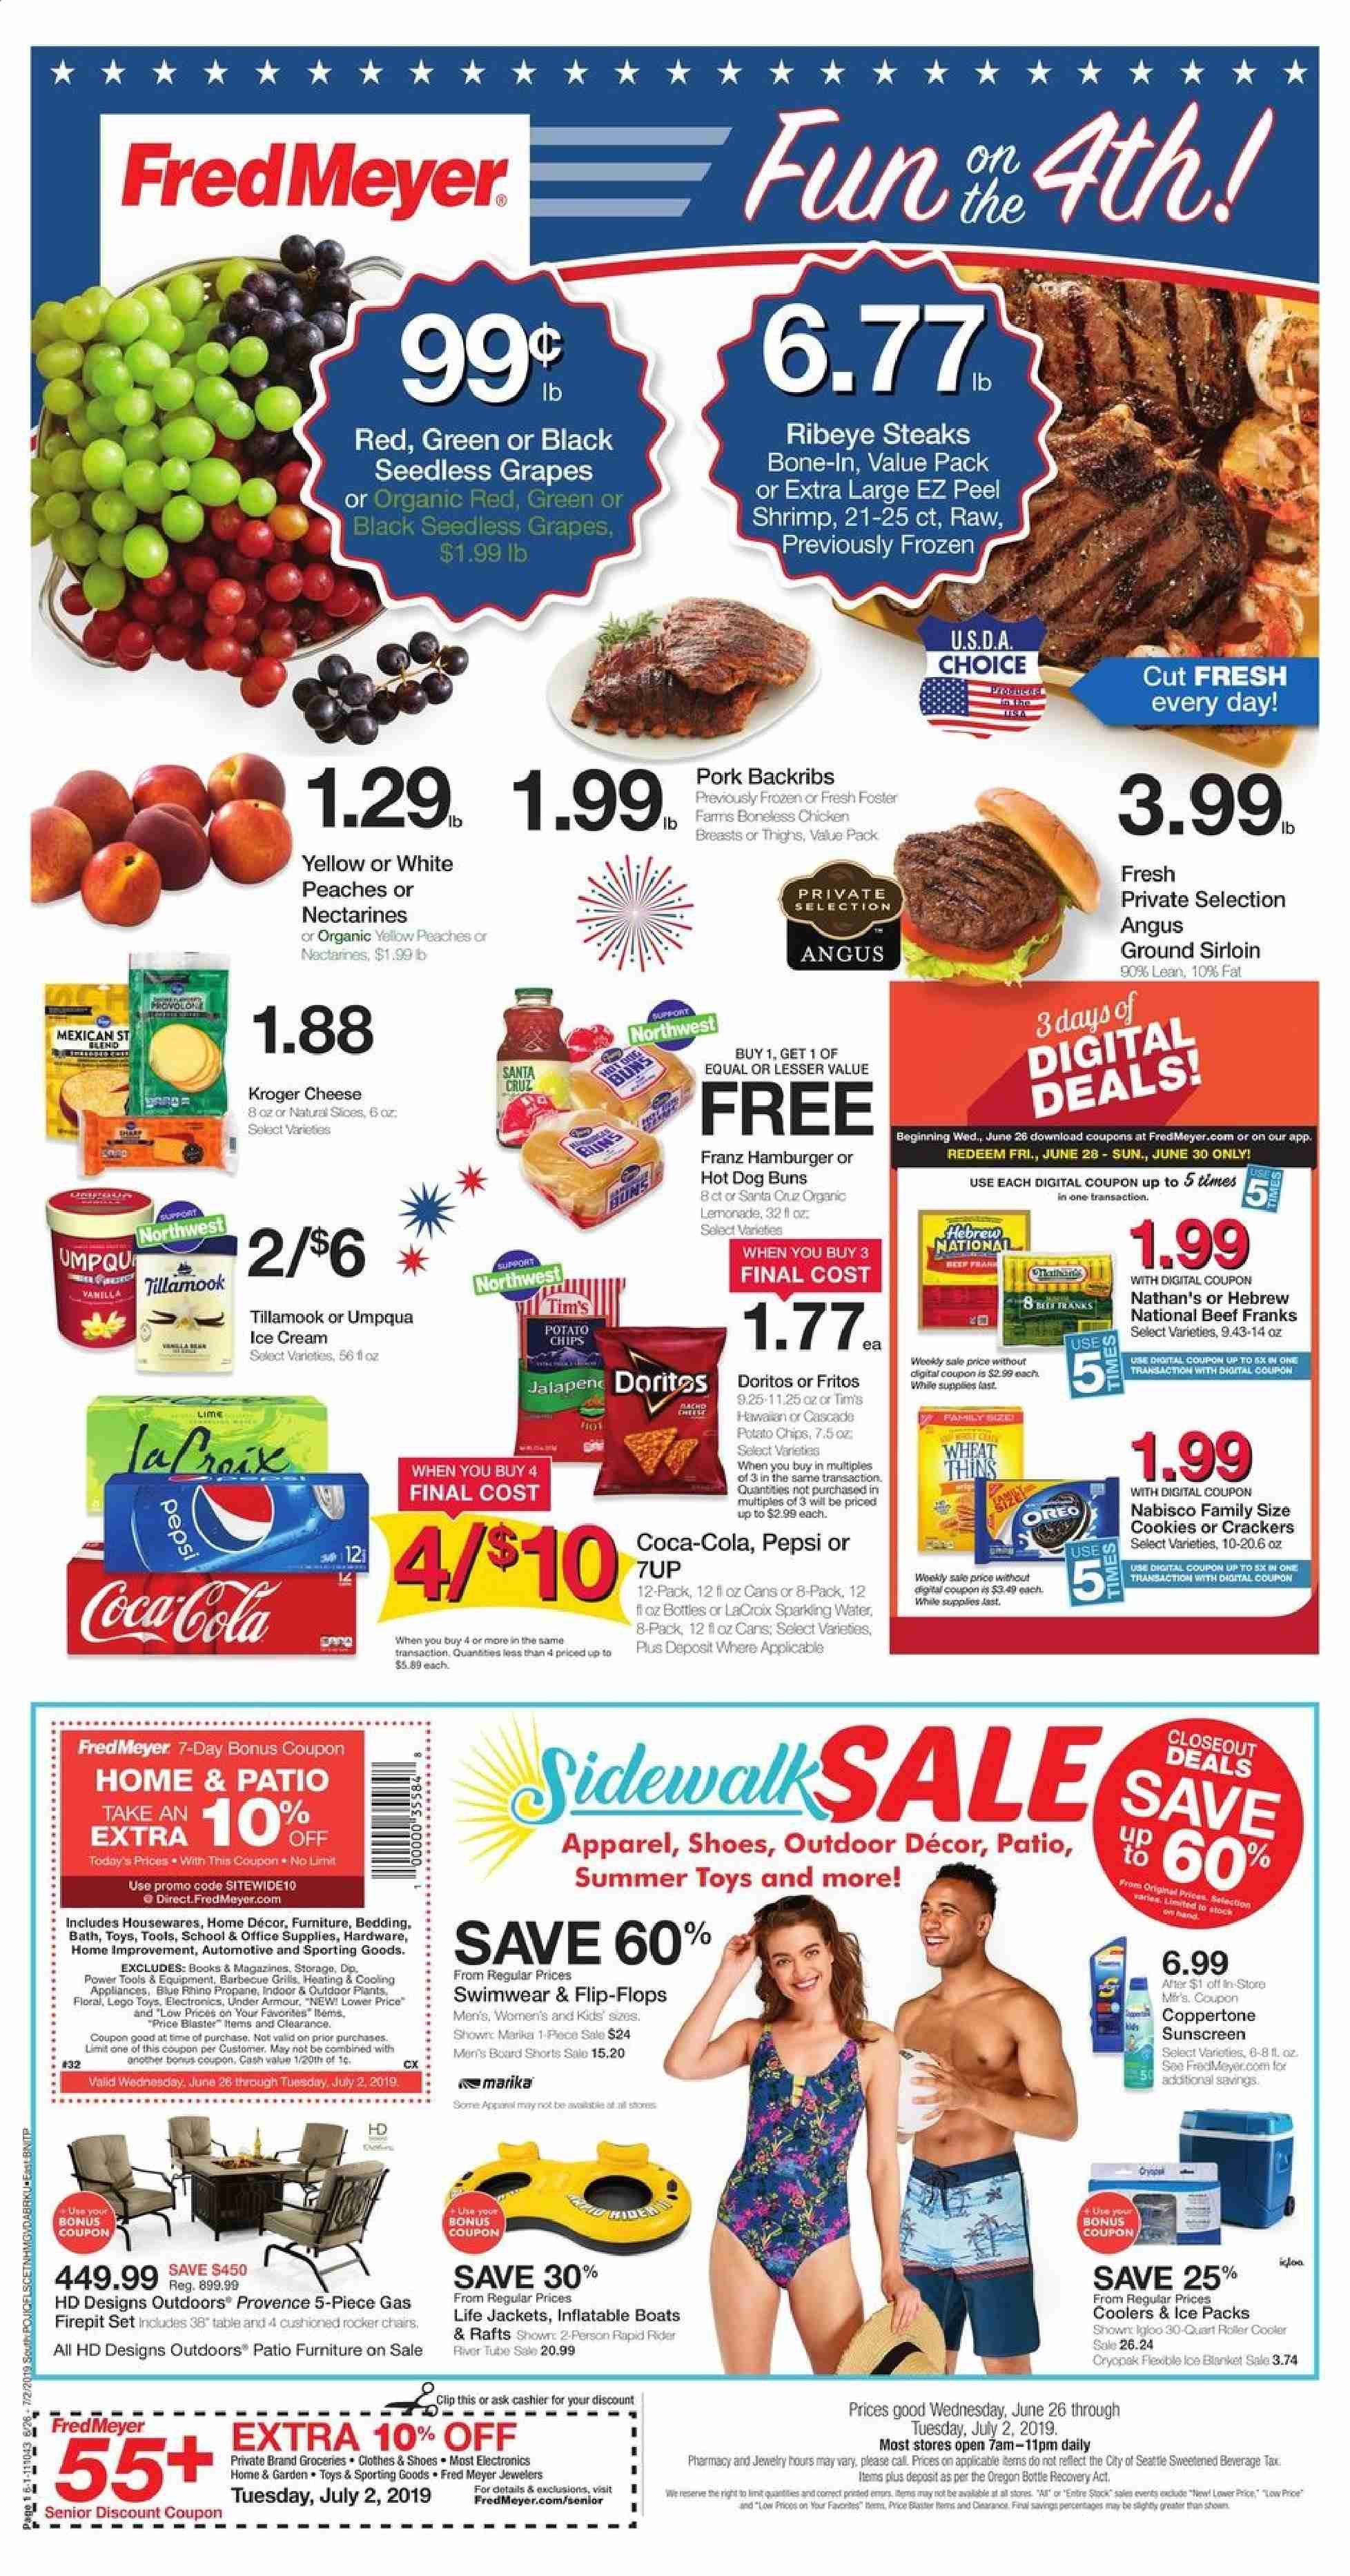 Fred Meyer Flyer  - 06.26.2019 - 07.02.2019. Page 1.